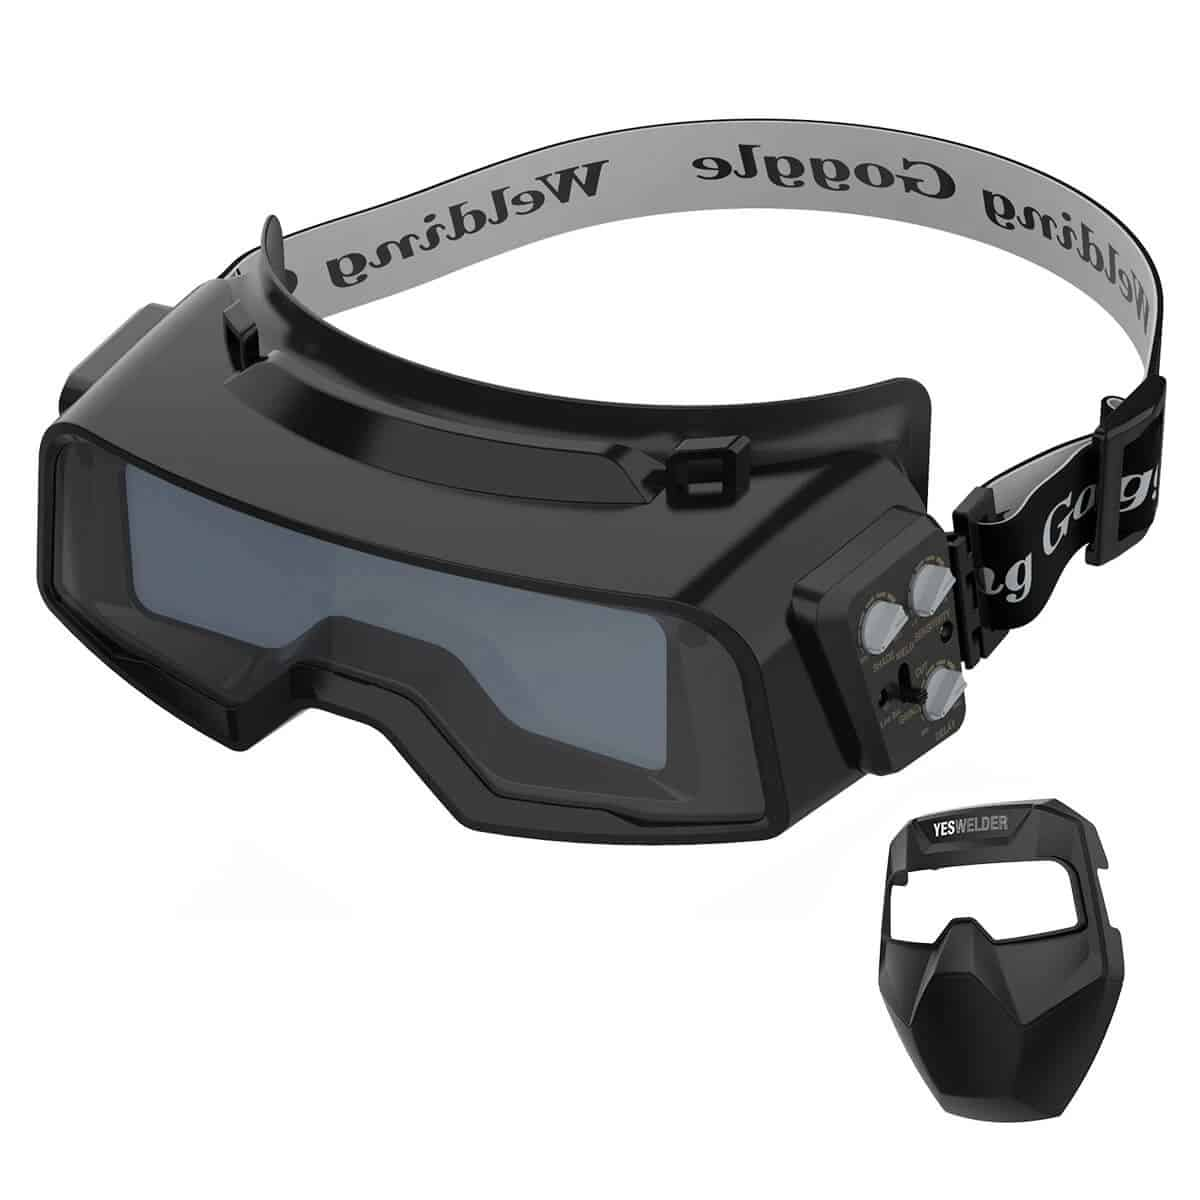 yeswelder R100A Goggles